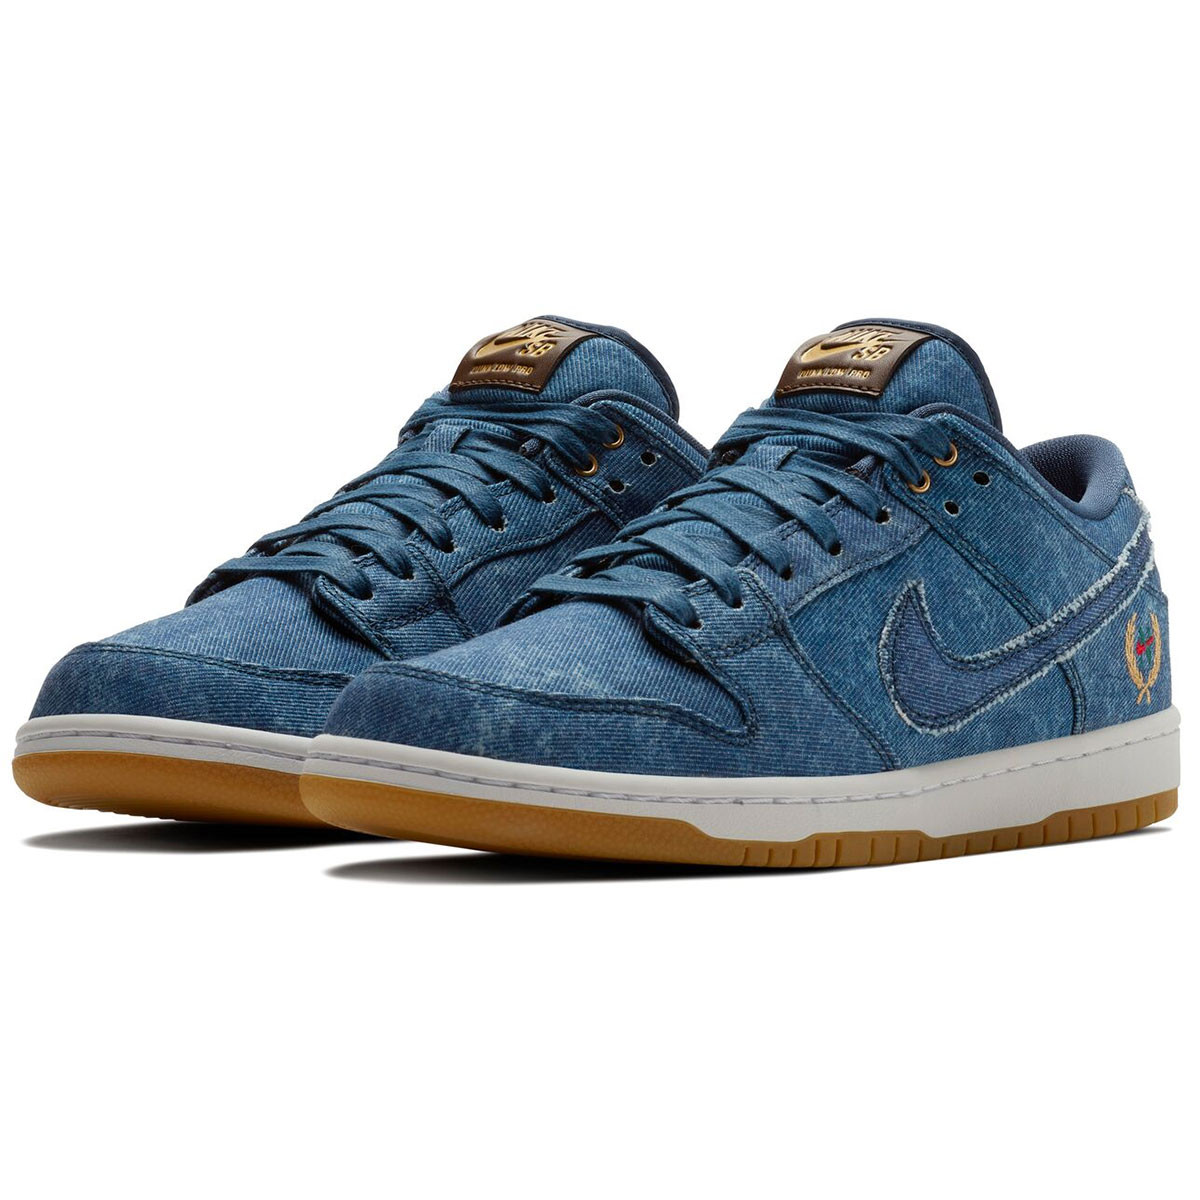 Nike SB Dunk Low Rivals Shoes